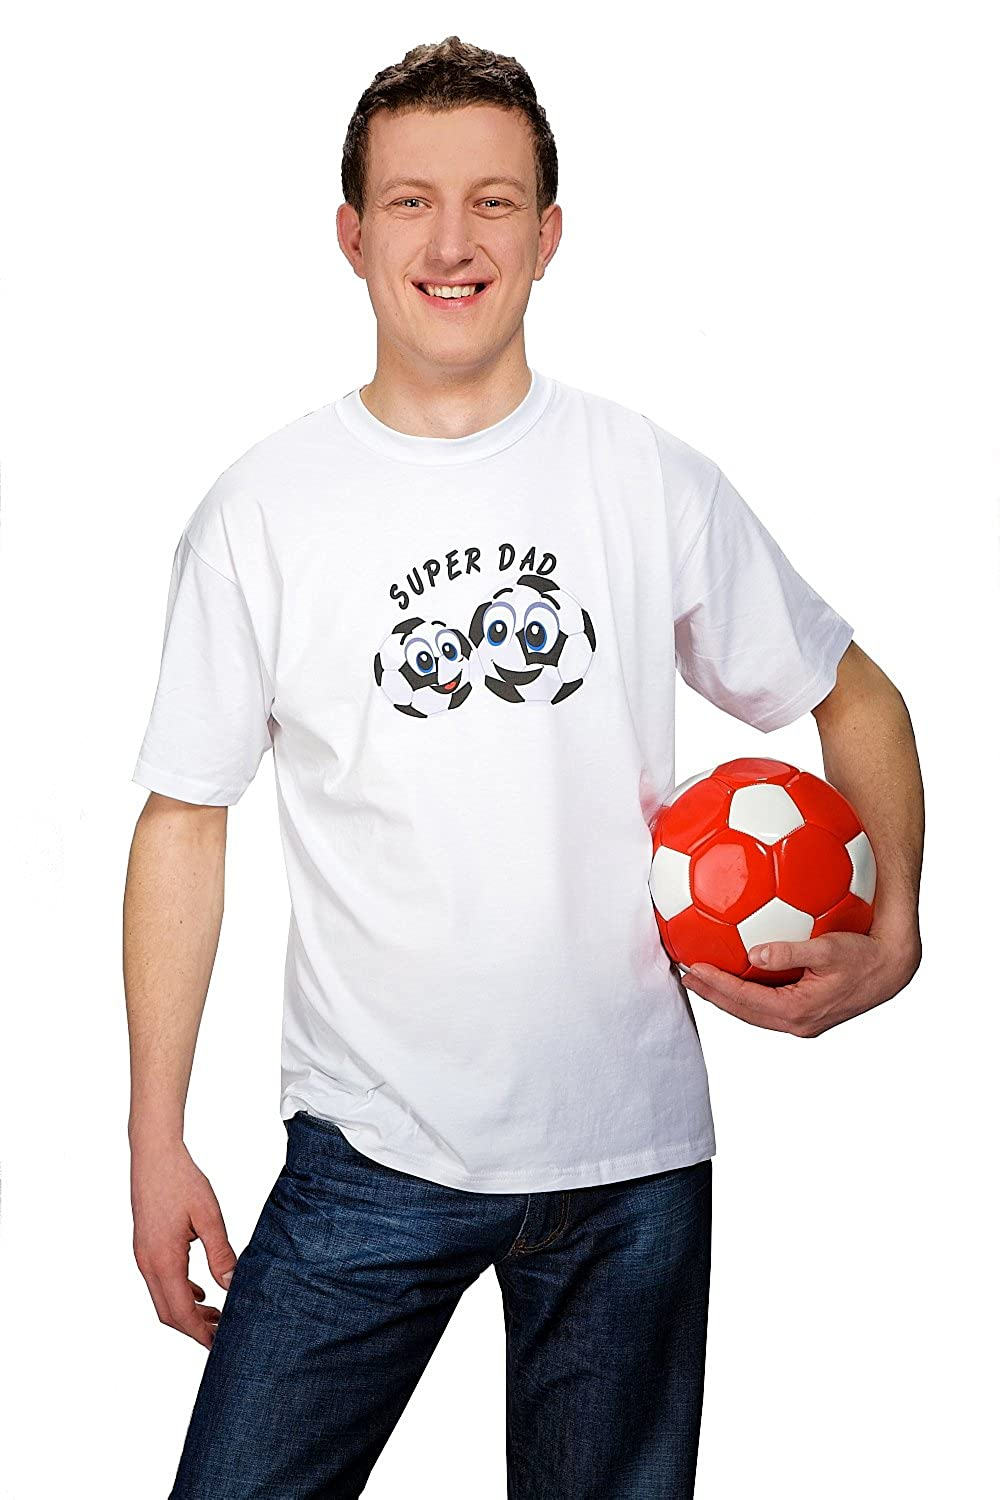 1bd7c3c253e8e My Tummy T-shirt for Super Dad soccer Balls Football Balls XXL (XX-Large) -  Maternity Clothing by: Amazon.ca: Clothing & Accessories